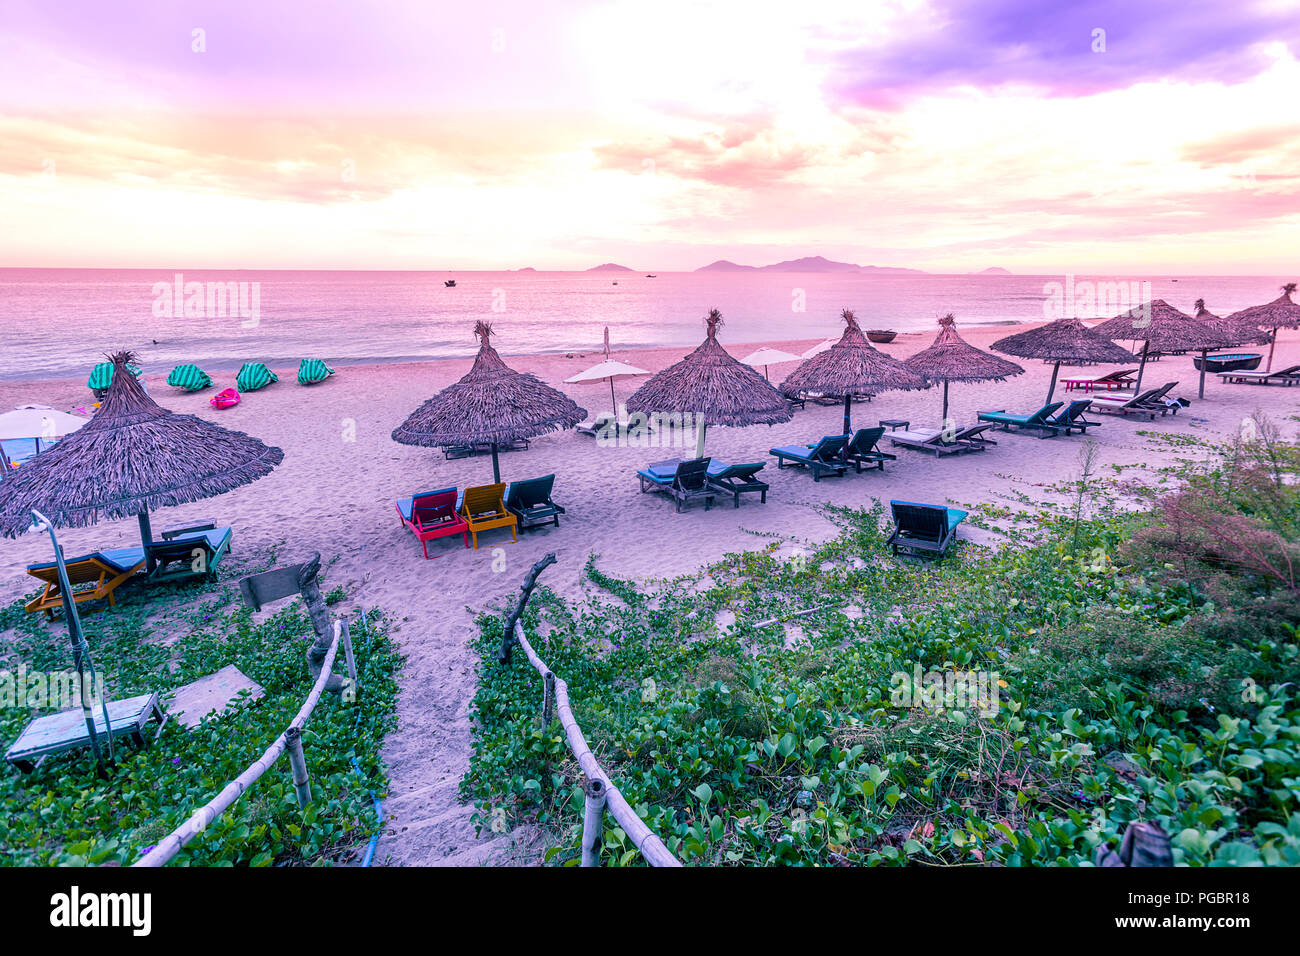 Early morning at a peacful callm sea ath the beach in the South China Sea - Stock Image